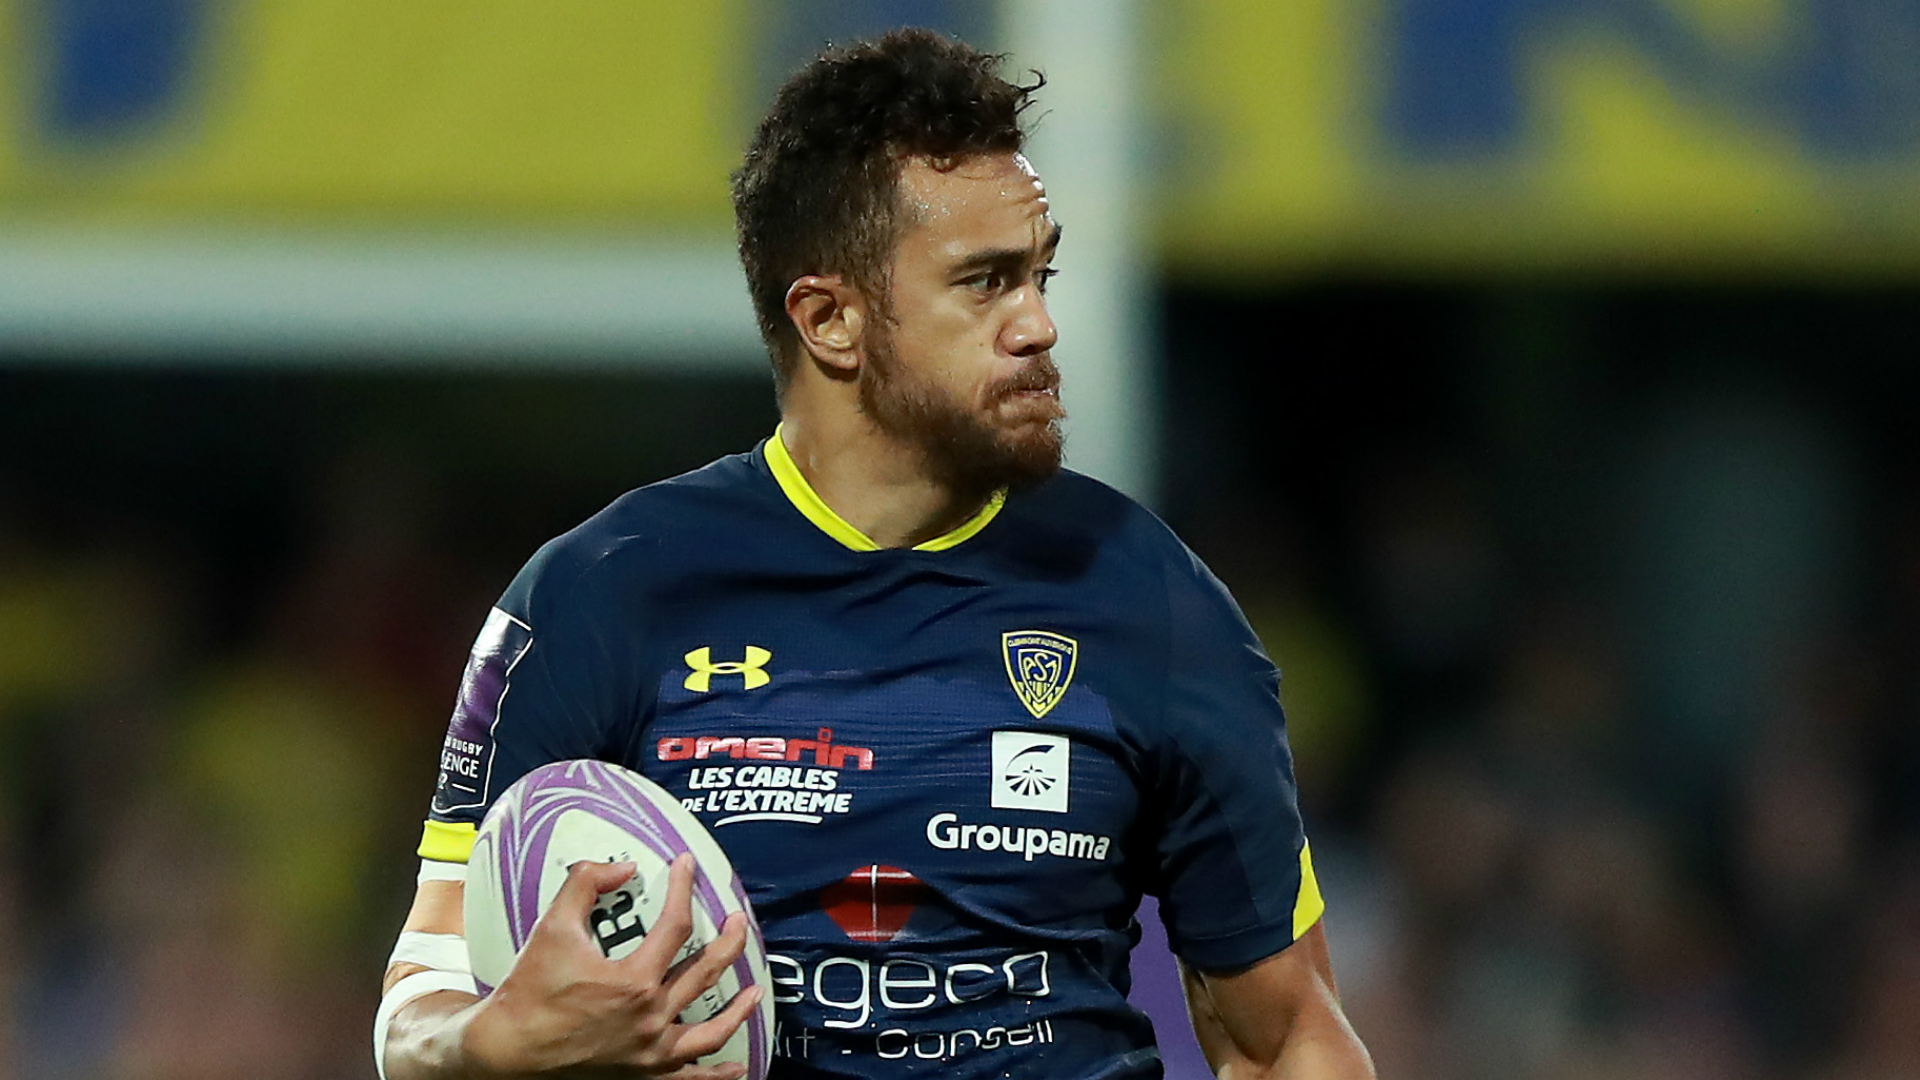 Clermont Auvergne are up and running in the Top 14 as Peter Betham inspired a 28-10 win over La Rochelle on Sunday.